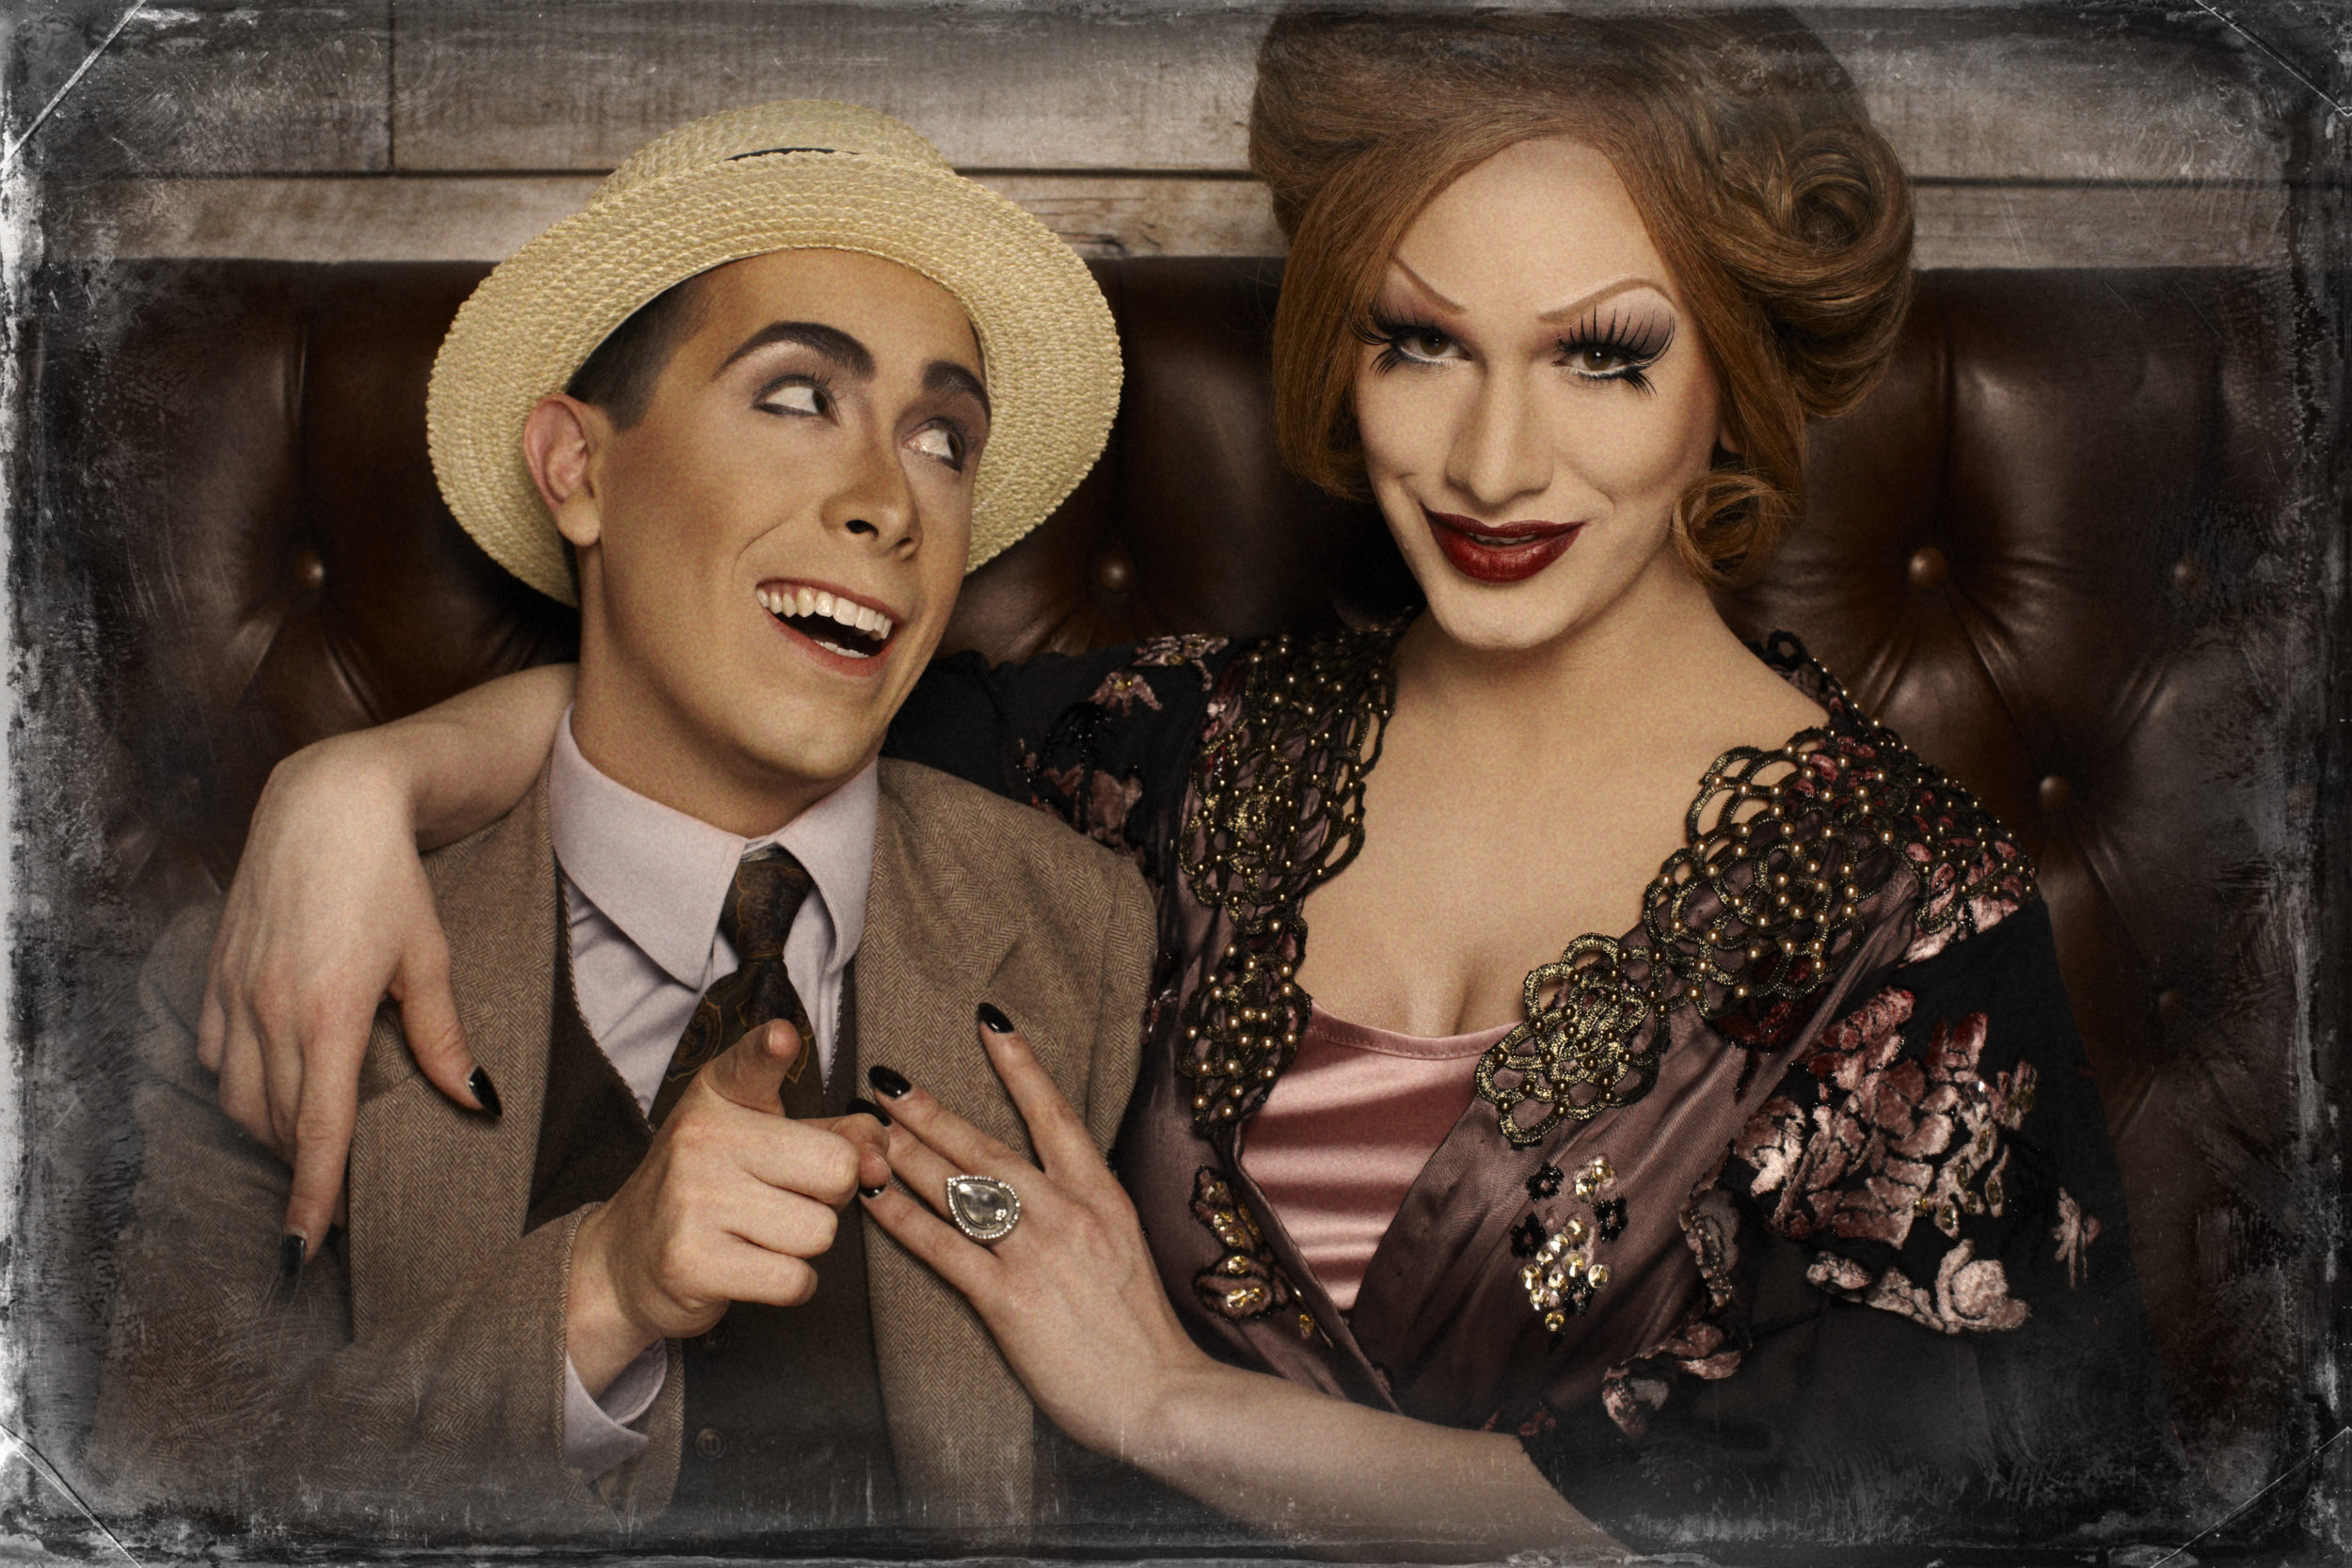 (left to right) Major Scales and Jinkx Monsoon. Photo credit: Magnus Hastings